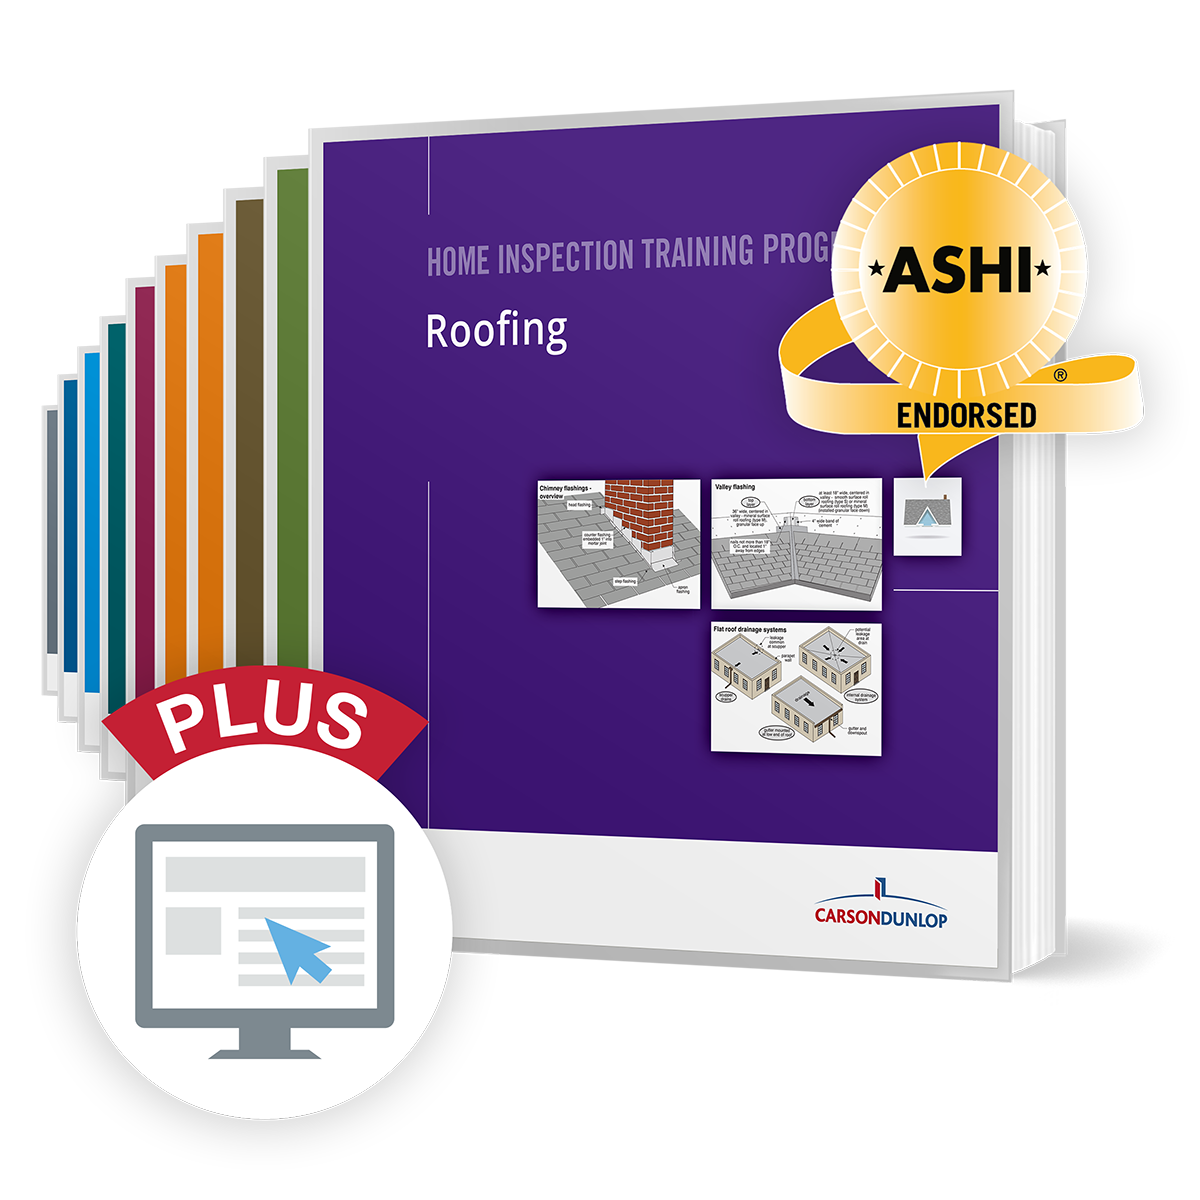 Complete Home Inspection Training Program with computer icon for online component, ASHI endorsed